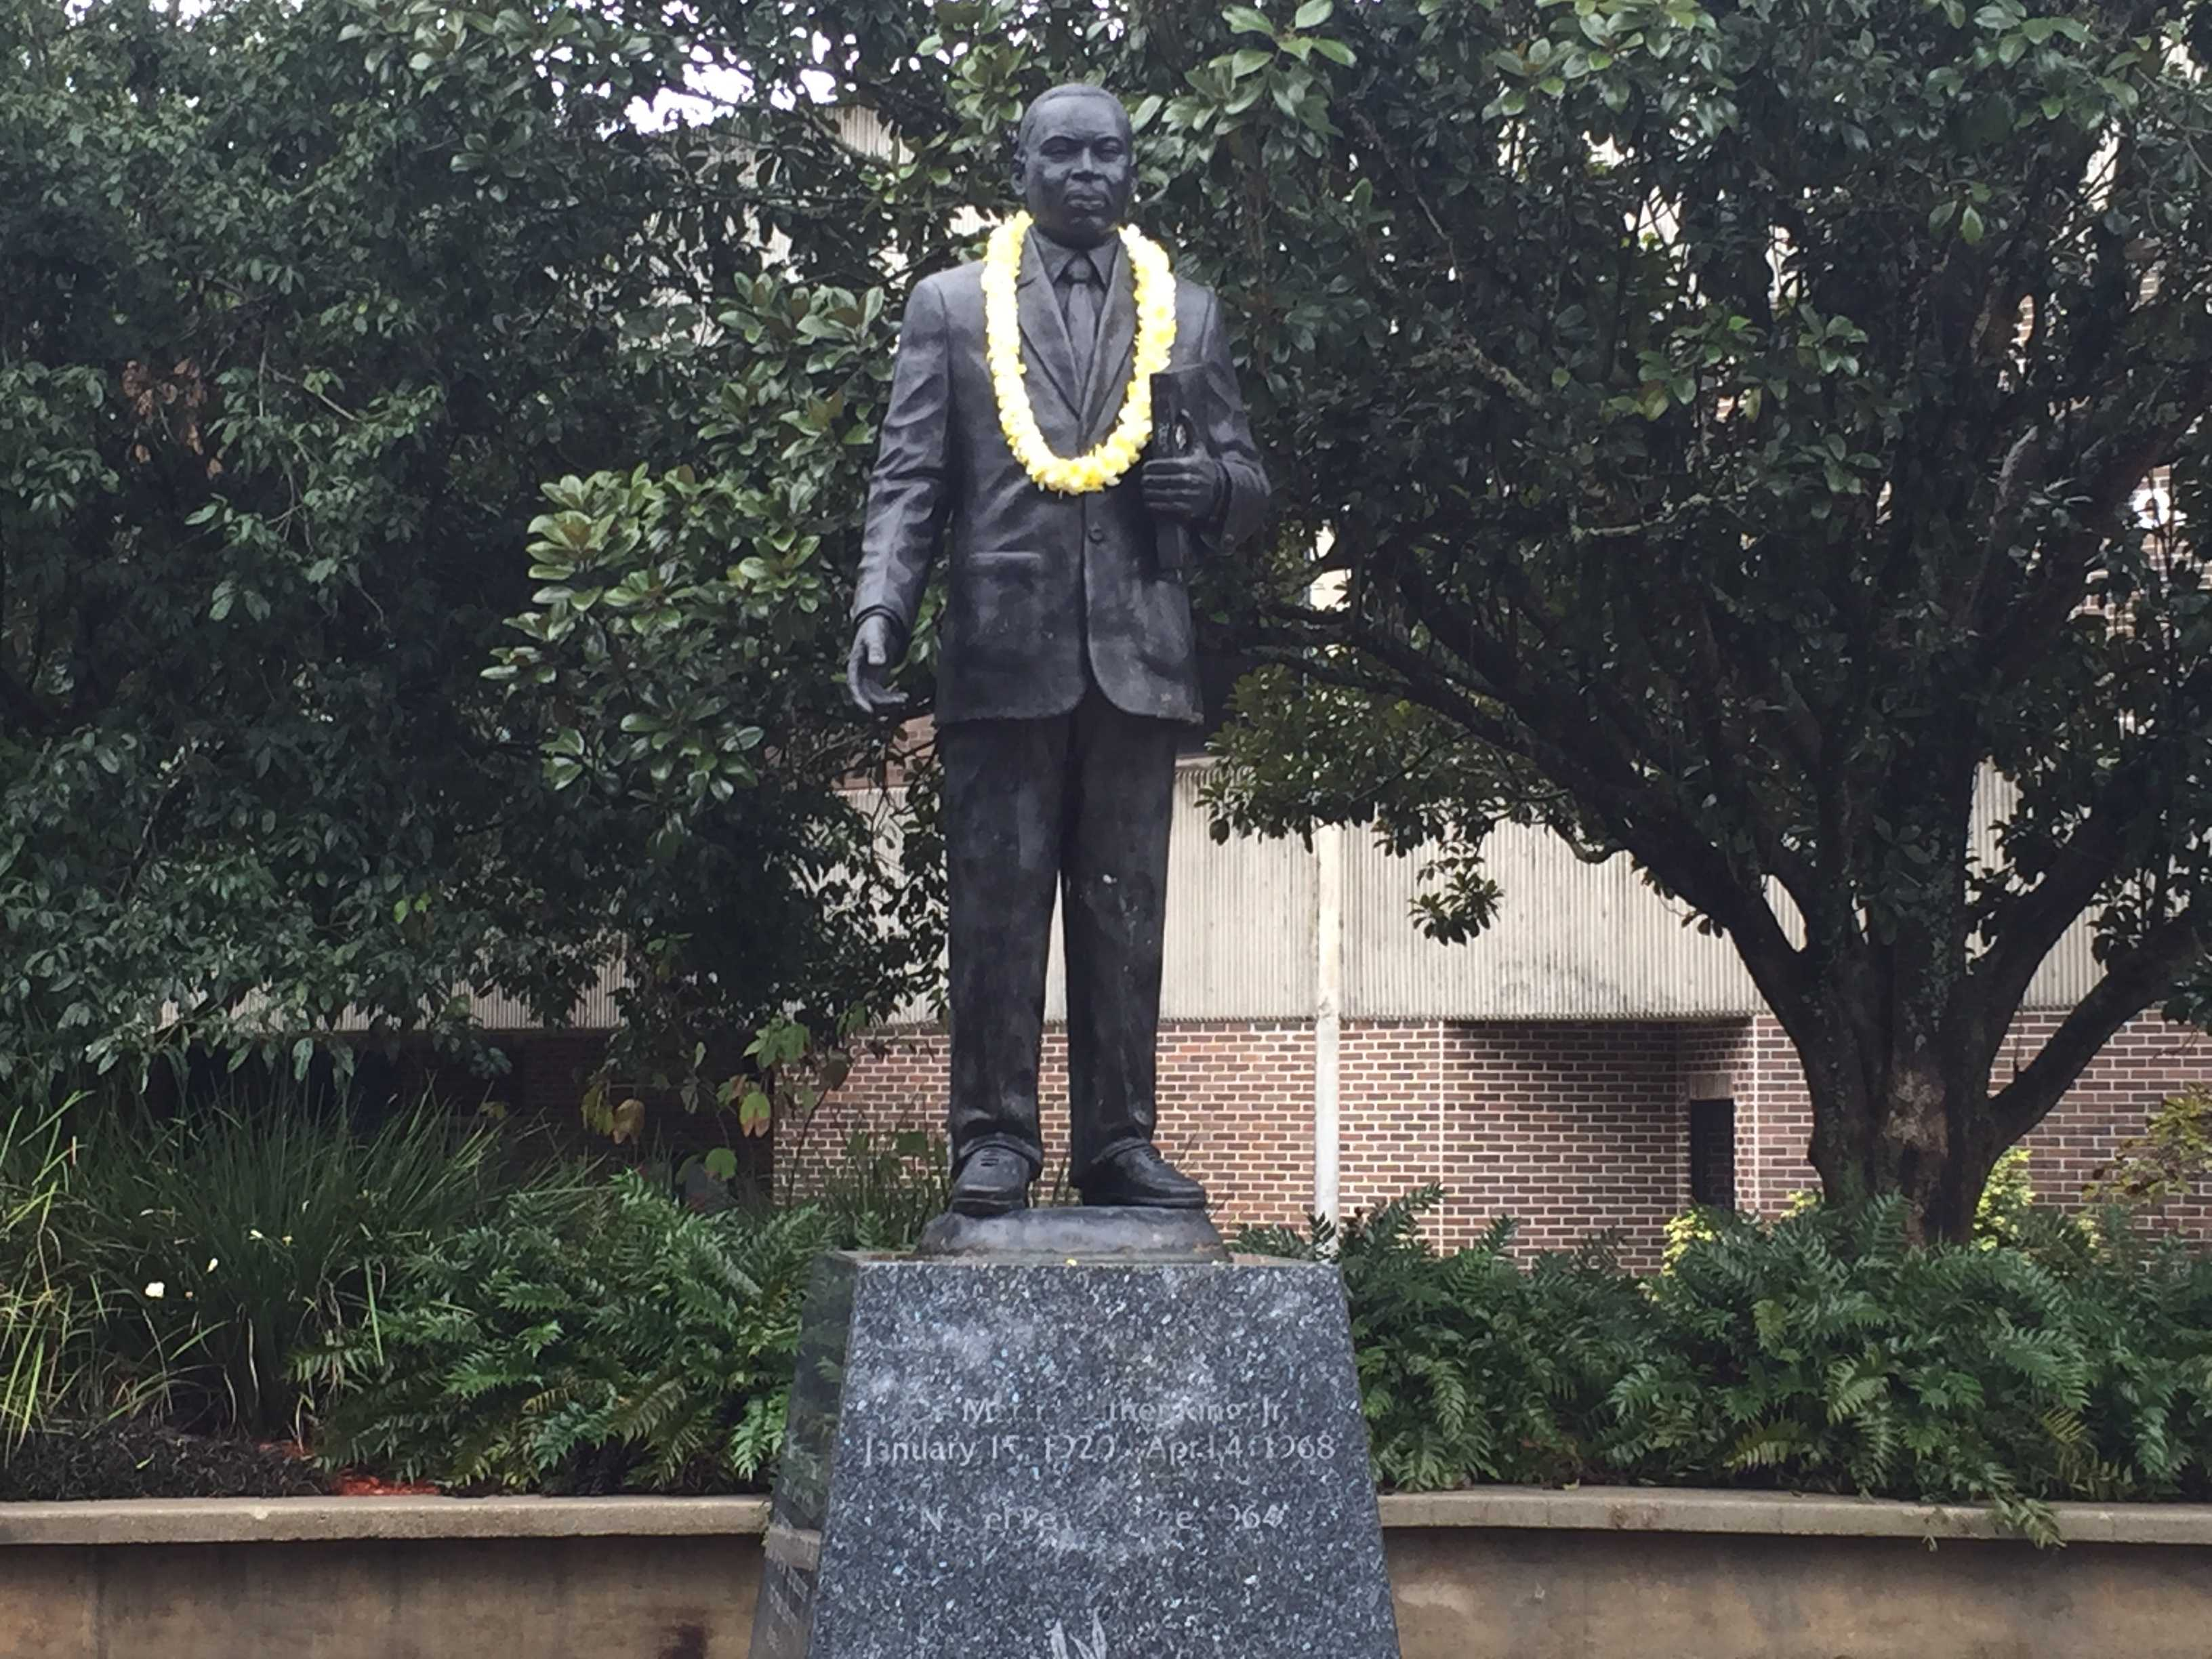 To close out the celebration, a lei was garlanded onto the statue of Martin Luther King Jr. in UNF's Peace Plaza. <i> Photo by Jordan Perez</i>